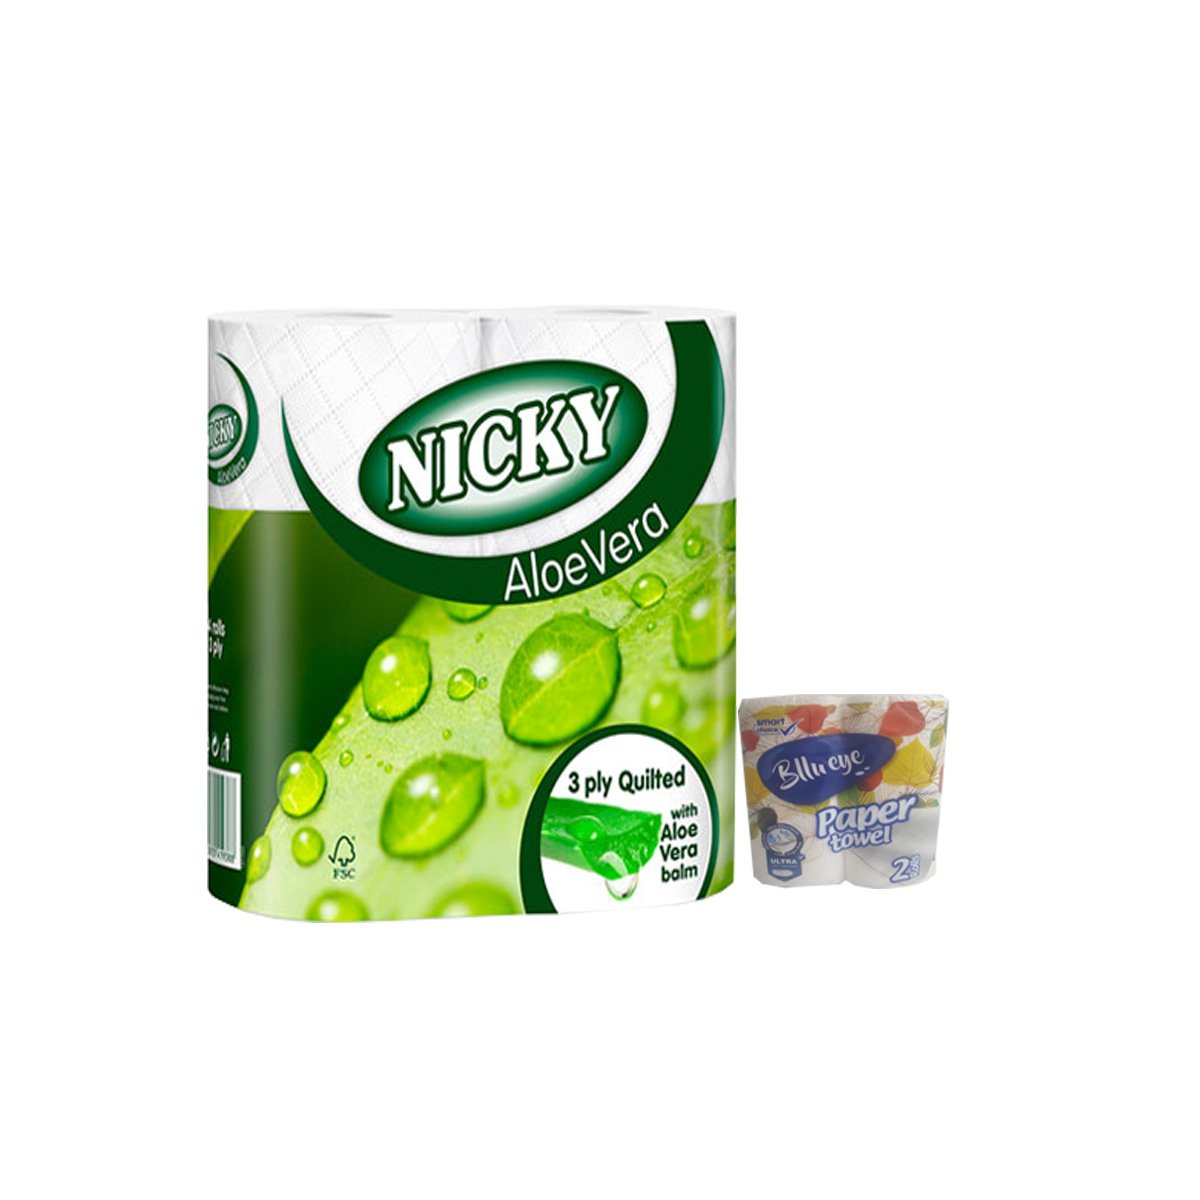 3 Ply Quilted Toilet Rolls Nicky Elite Aloevera - 45 rolls with free ...